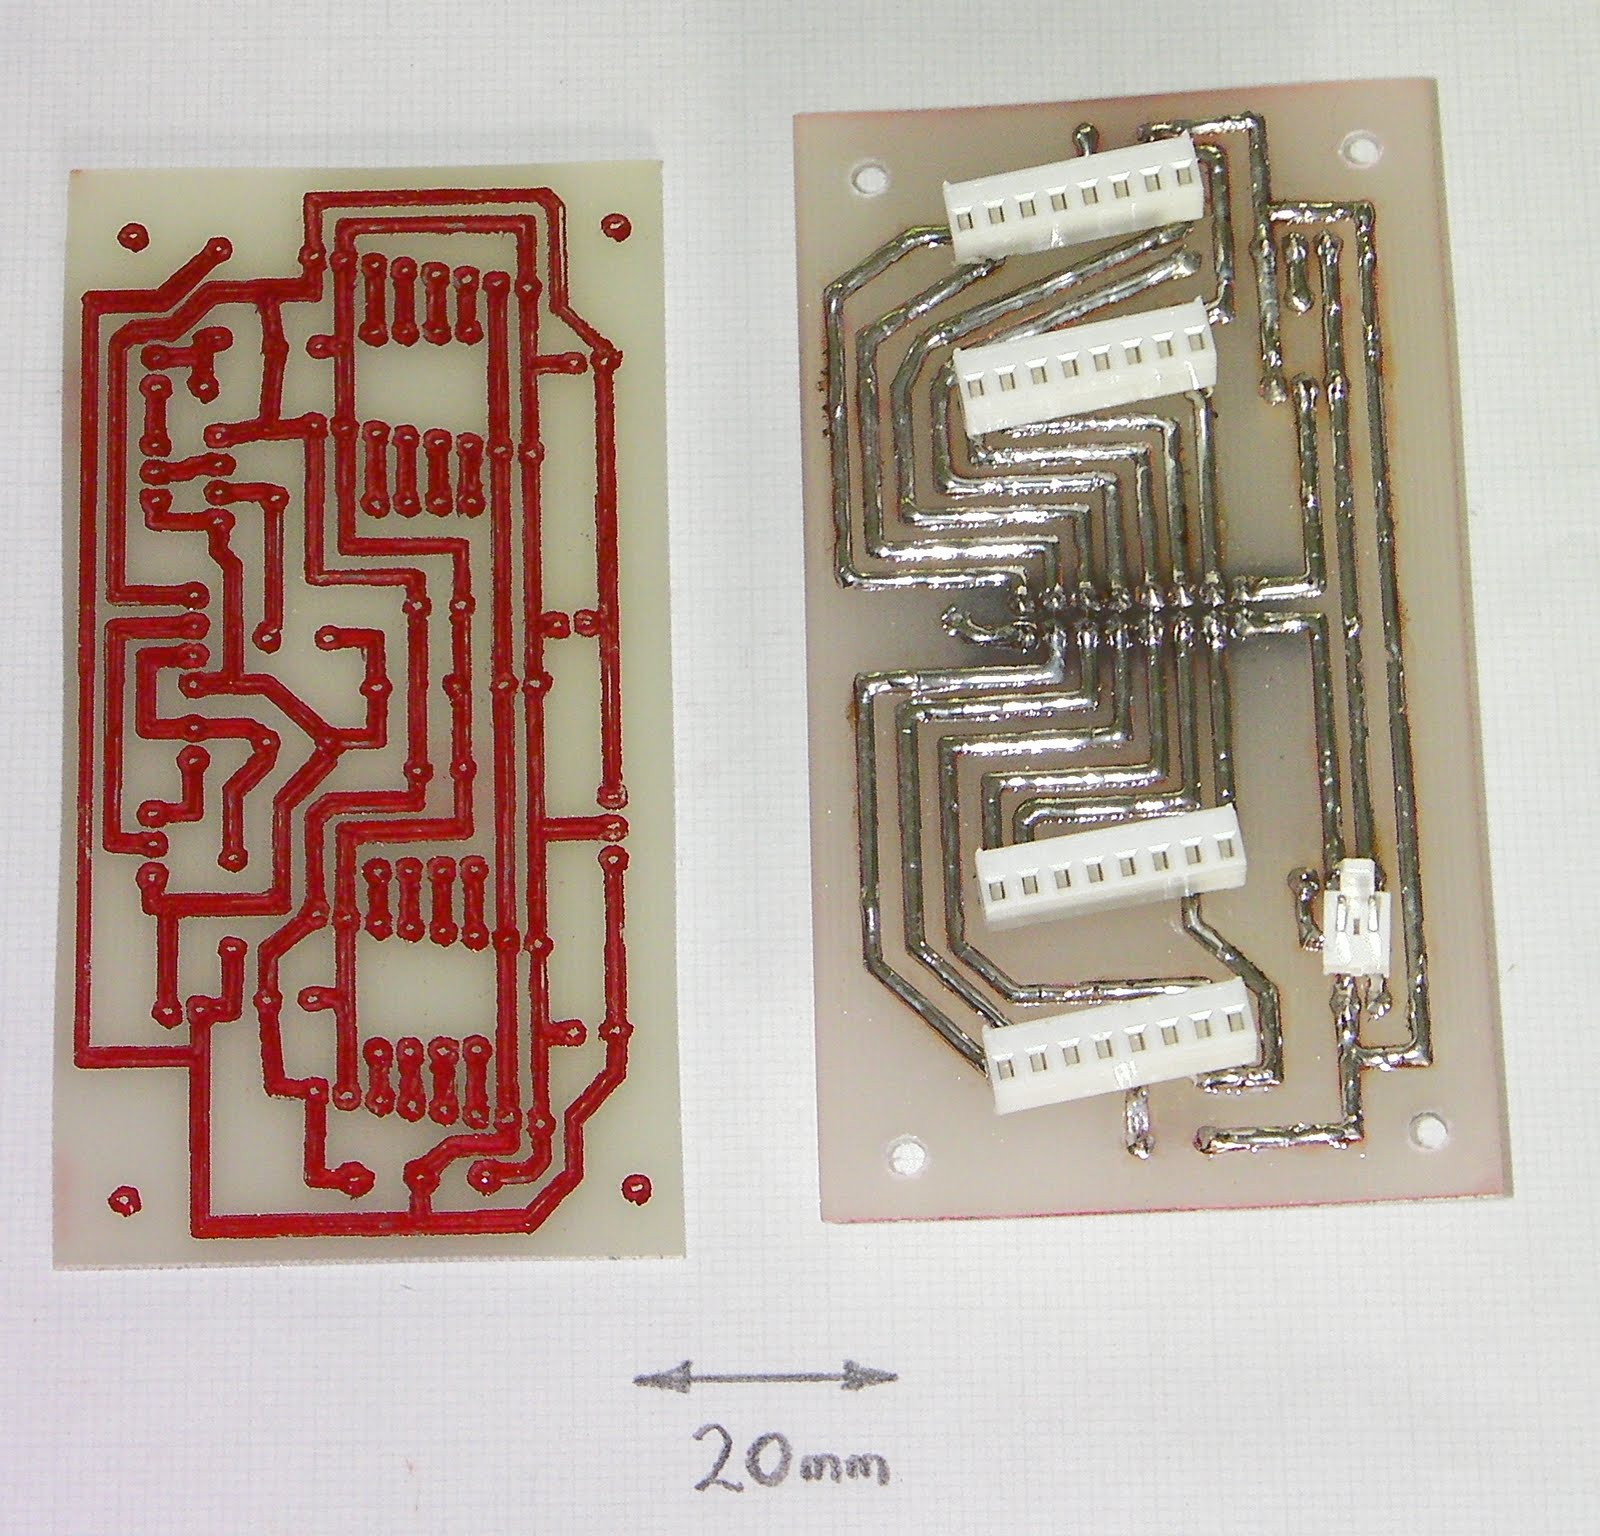 ramps 1.4 schematic pdf